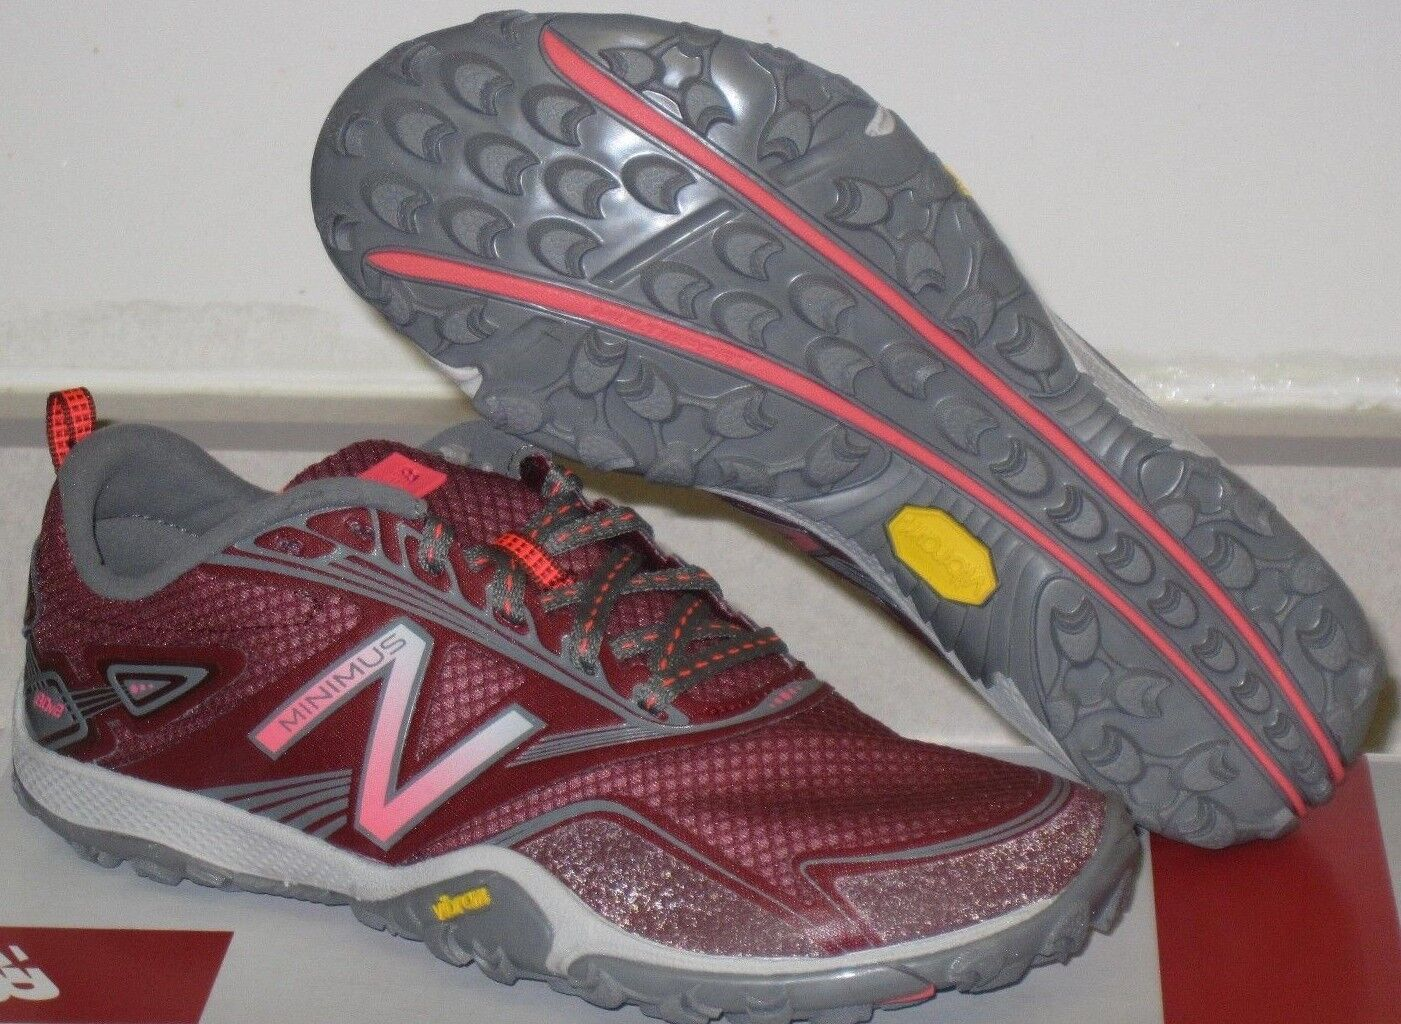 NEW BALANCE MINIMUS 80 v2 WOMEN'S RUNNING SHOES SIZE 7